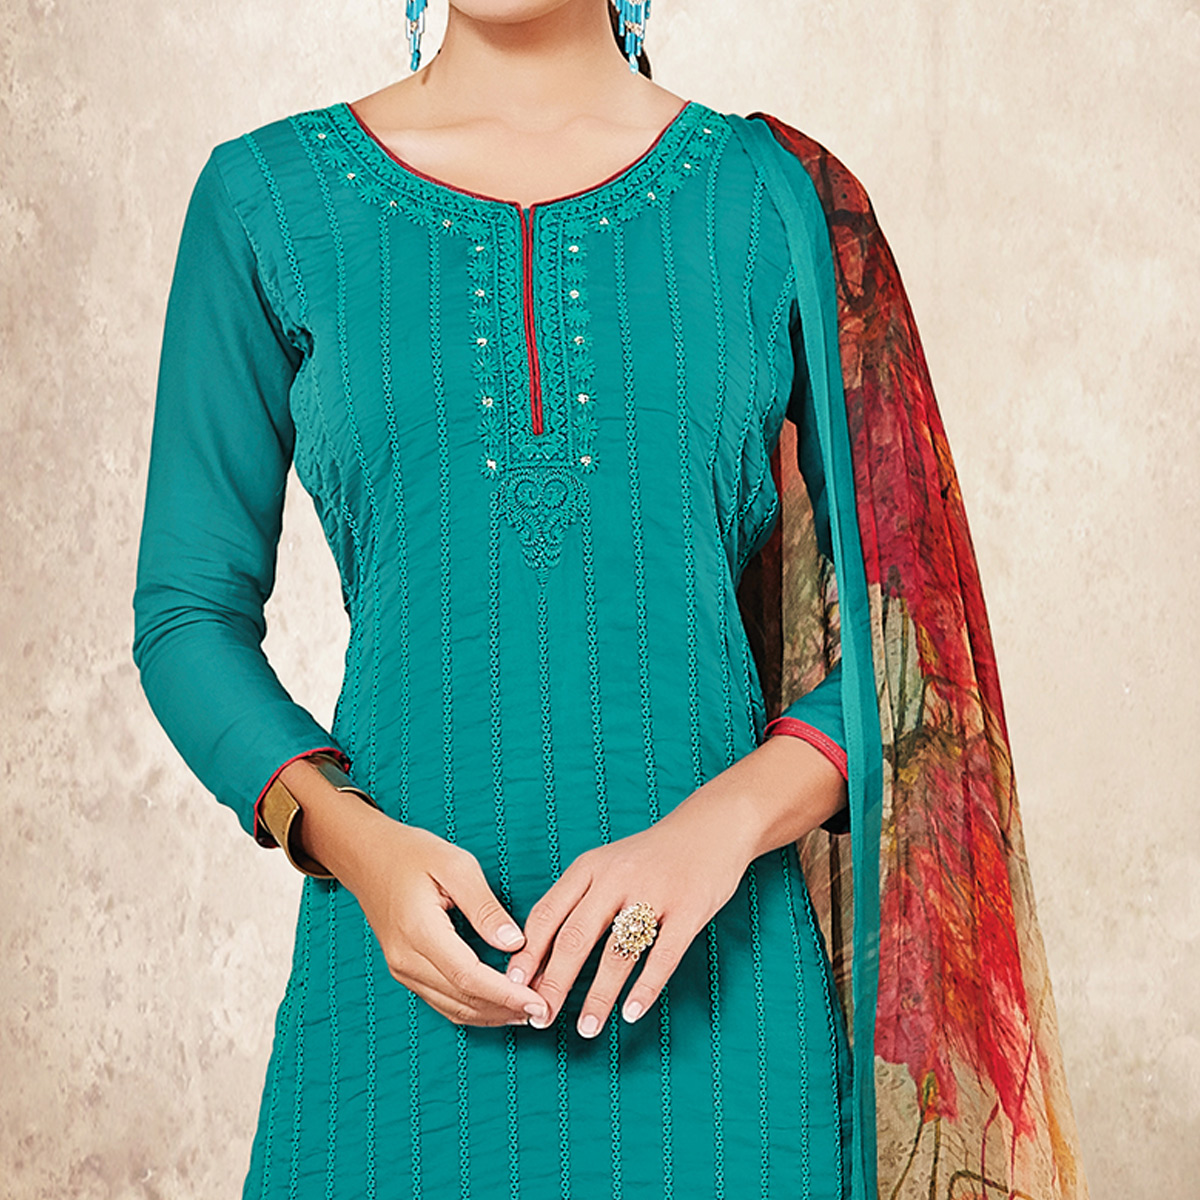 Classy Teal Blue Colored Party Wear Resham Embroidered Satin Dress Material